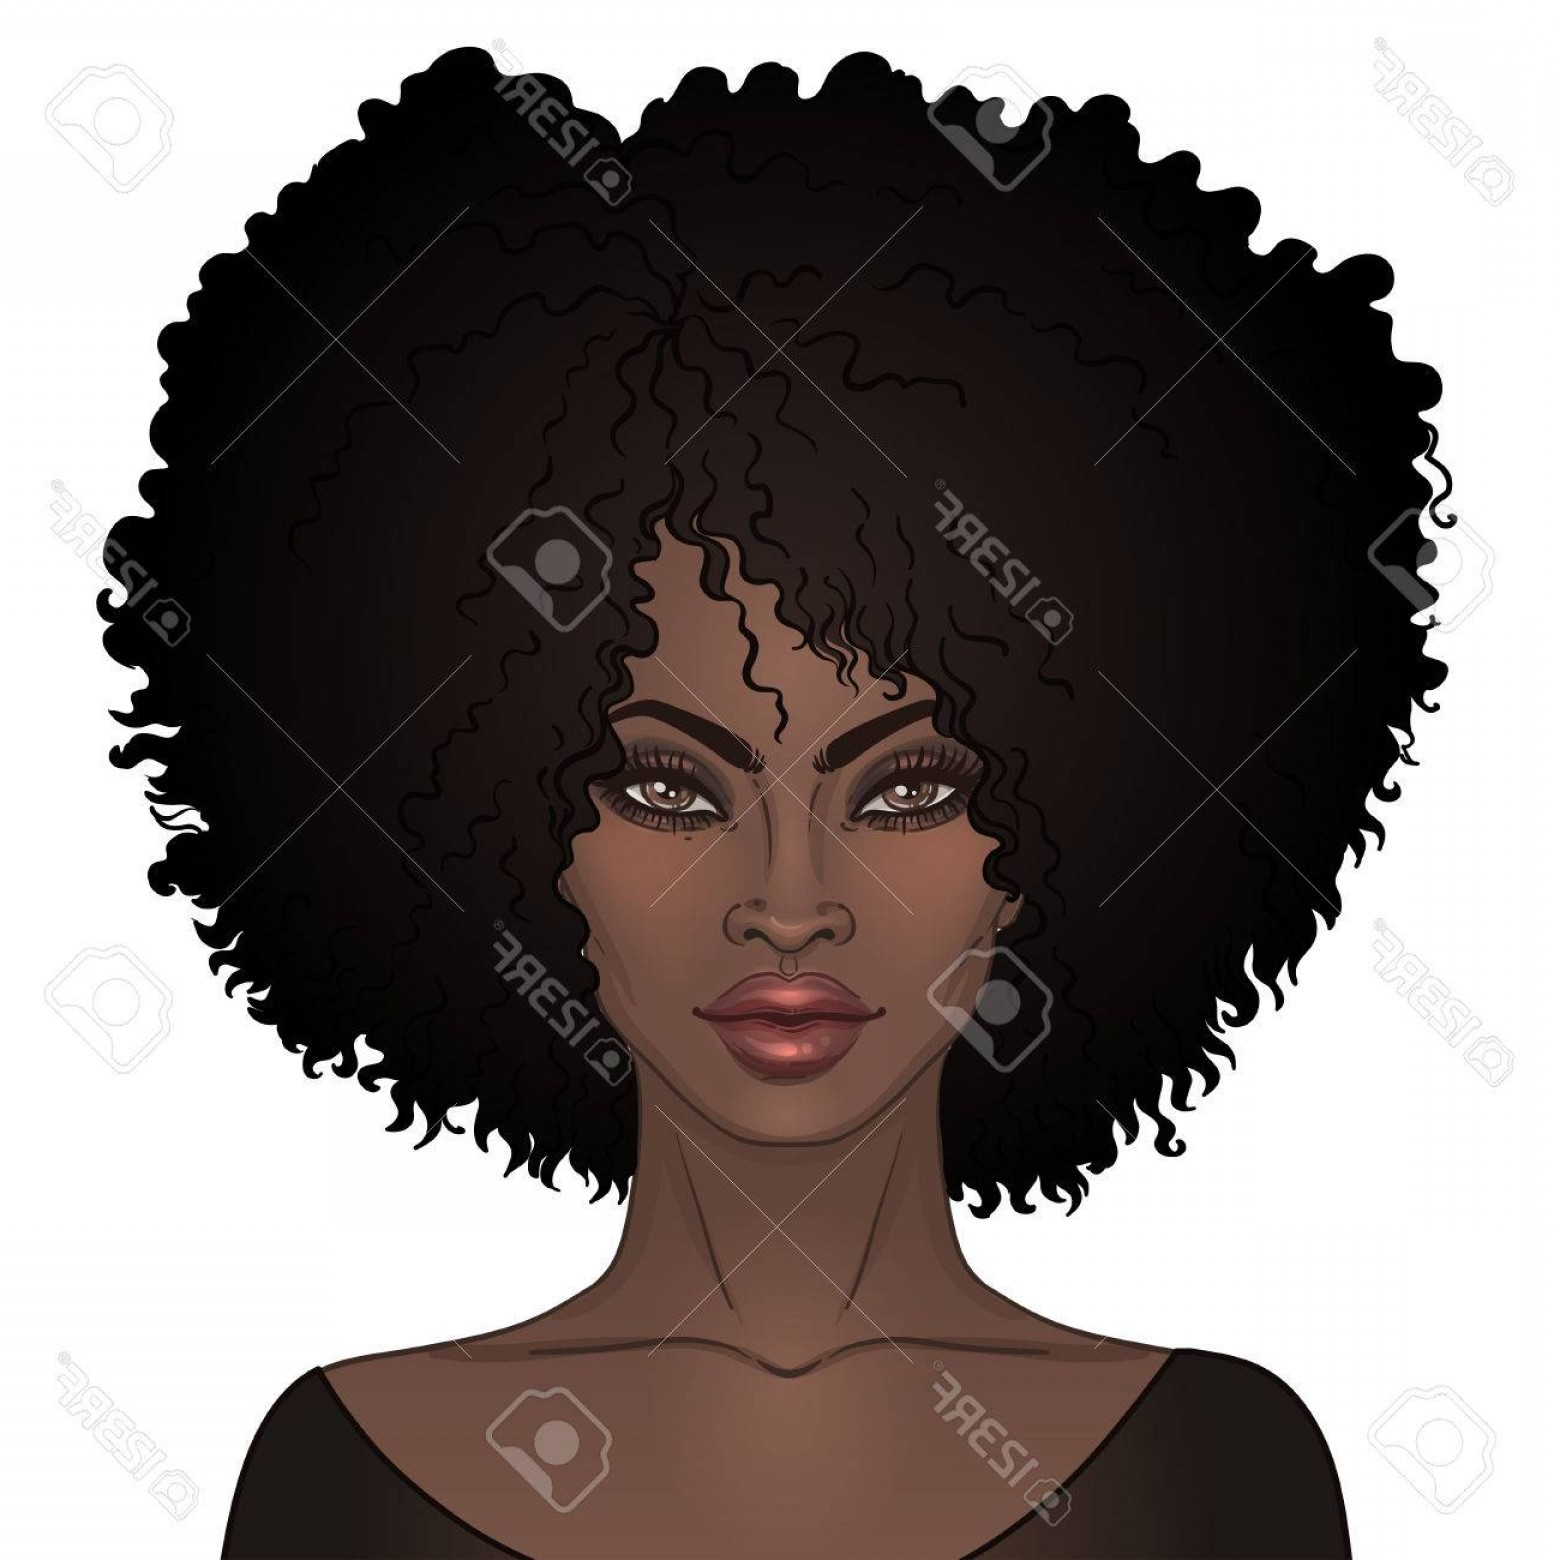 Black Woman Stock Vector: Photostock Vector African American Pretty Girl Vector Illustration Of Black Woman With Afro Hairstyle And Neck Great F